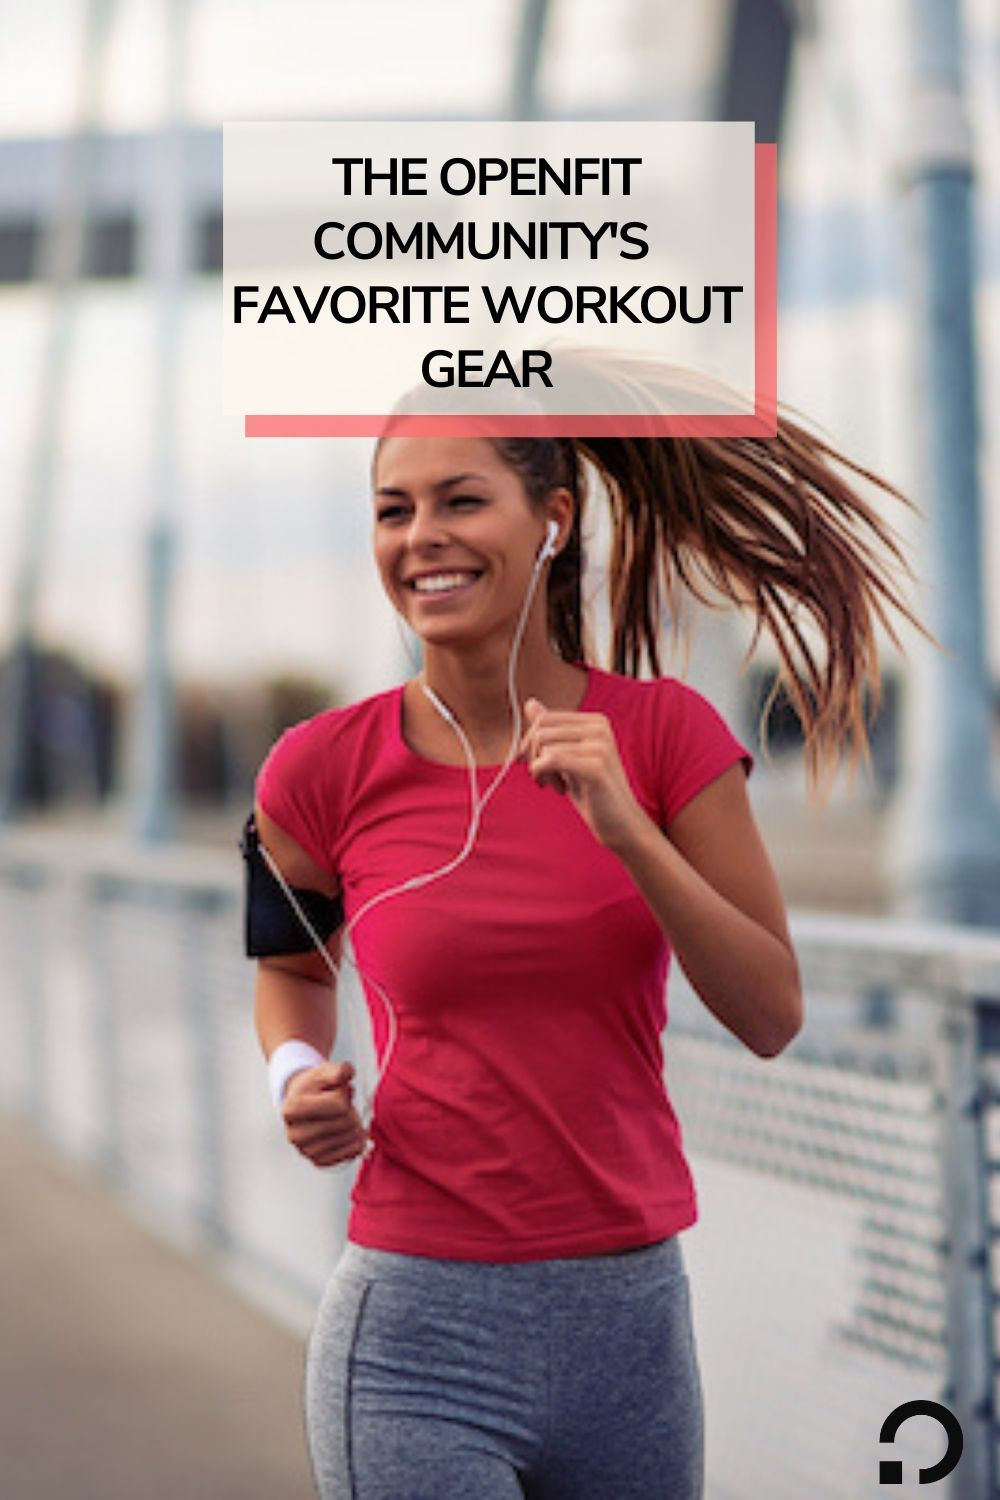 pin image for openfit workout gear | openfit community workout gear